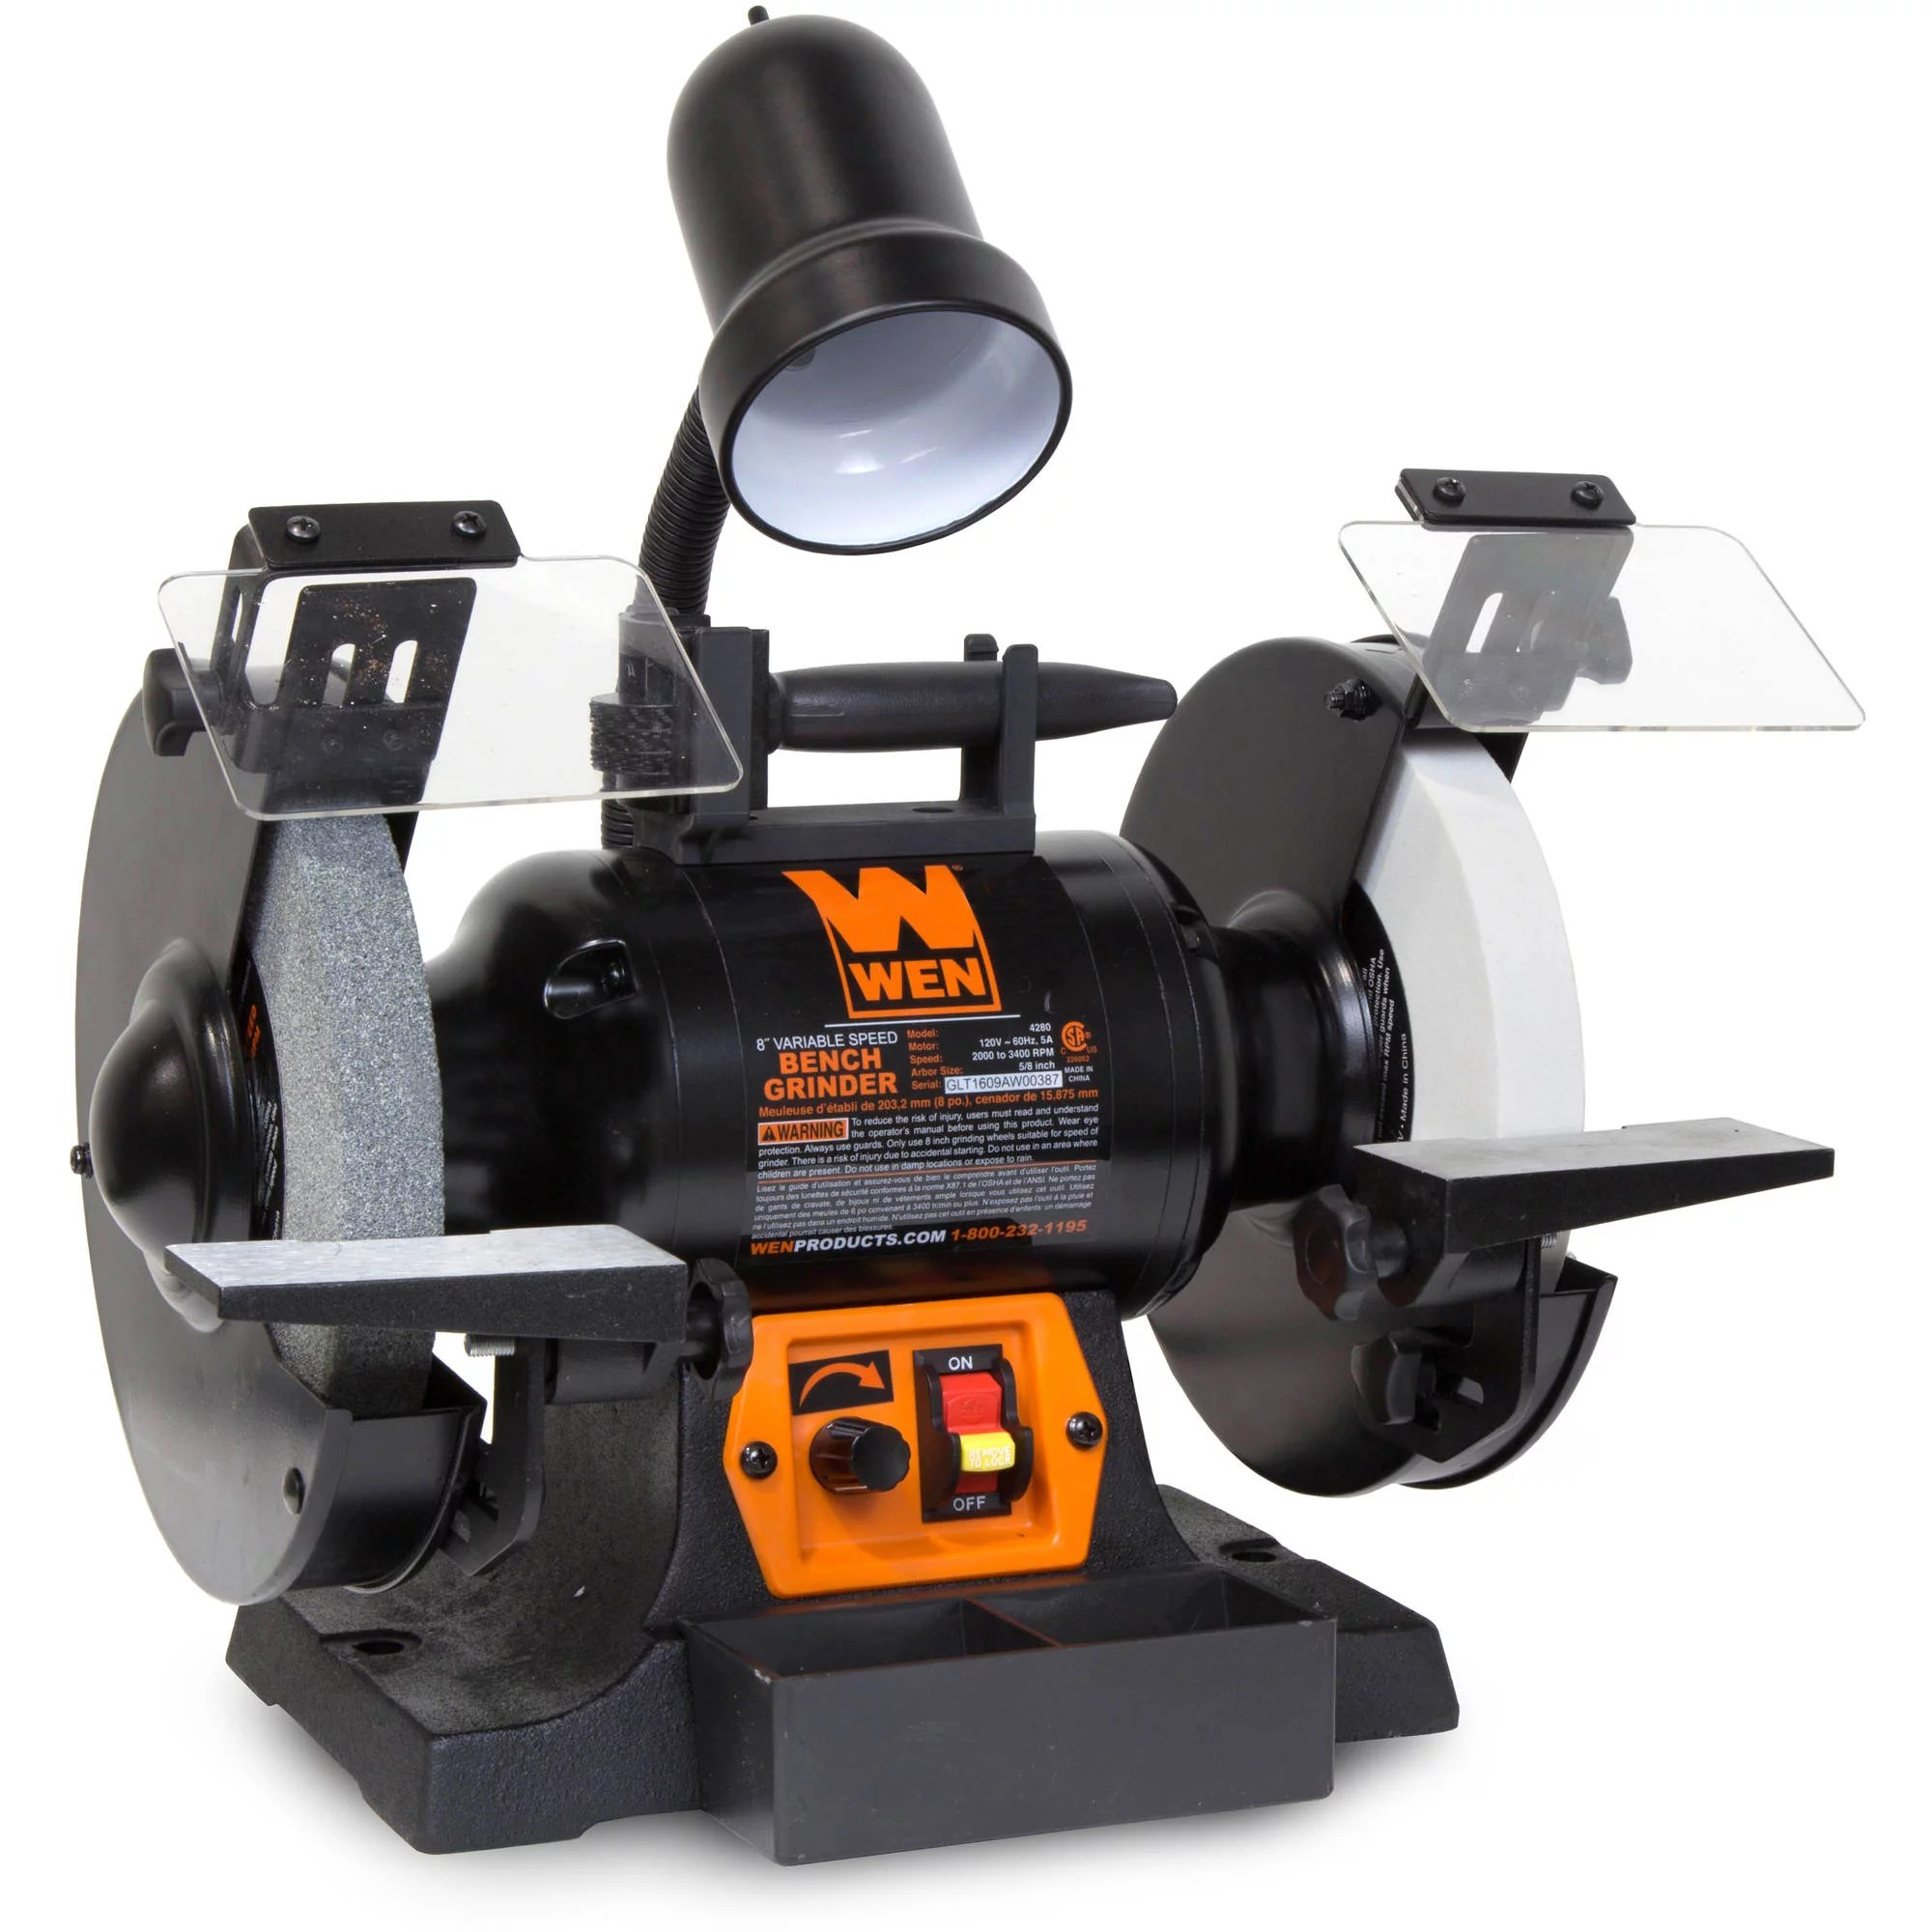 Wen 5 Amp 8 Inch Variable Speed Bench Grinder With Work